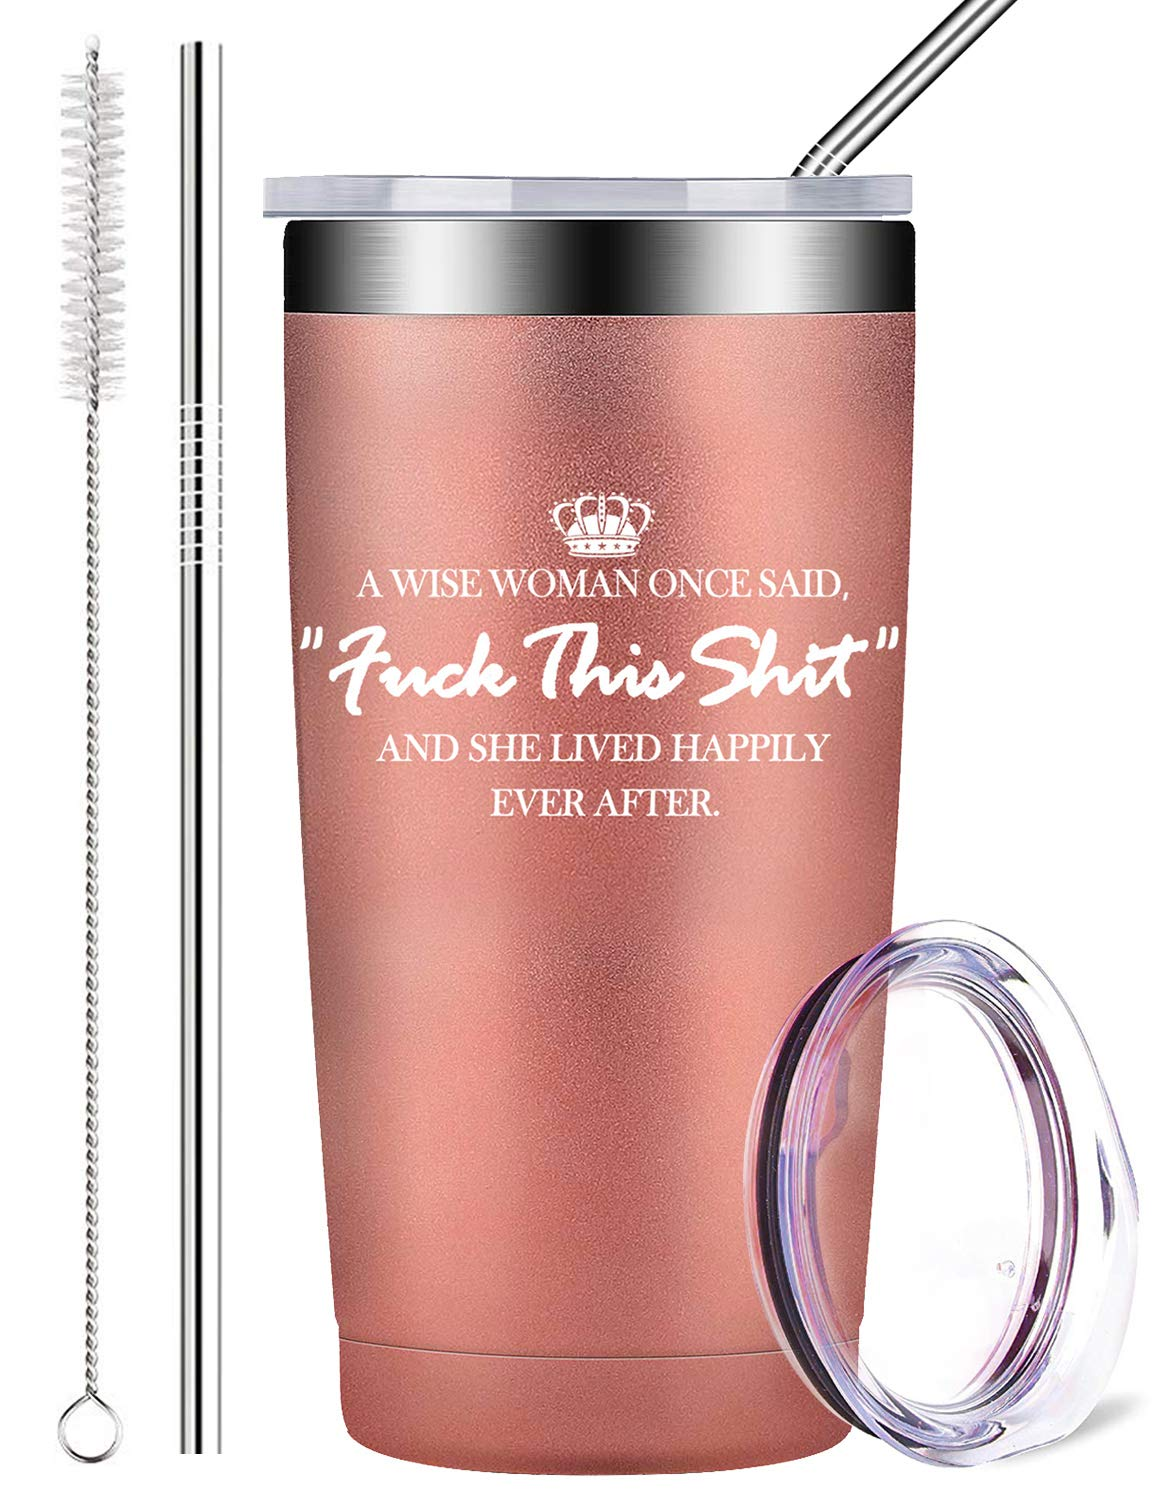 A Wise Woman Once Said, Stainless Steel Wine Tumbler with Lid and Straws Insulated Travel Tumbler Coffee Cup Funny Birthday Gifts for Women Friends (20 oz, Rose Gold) by AMIGOO